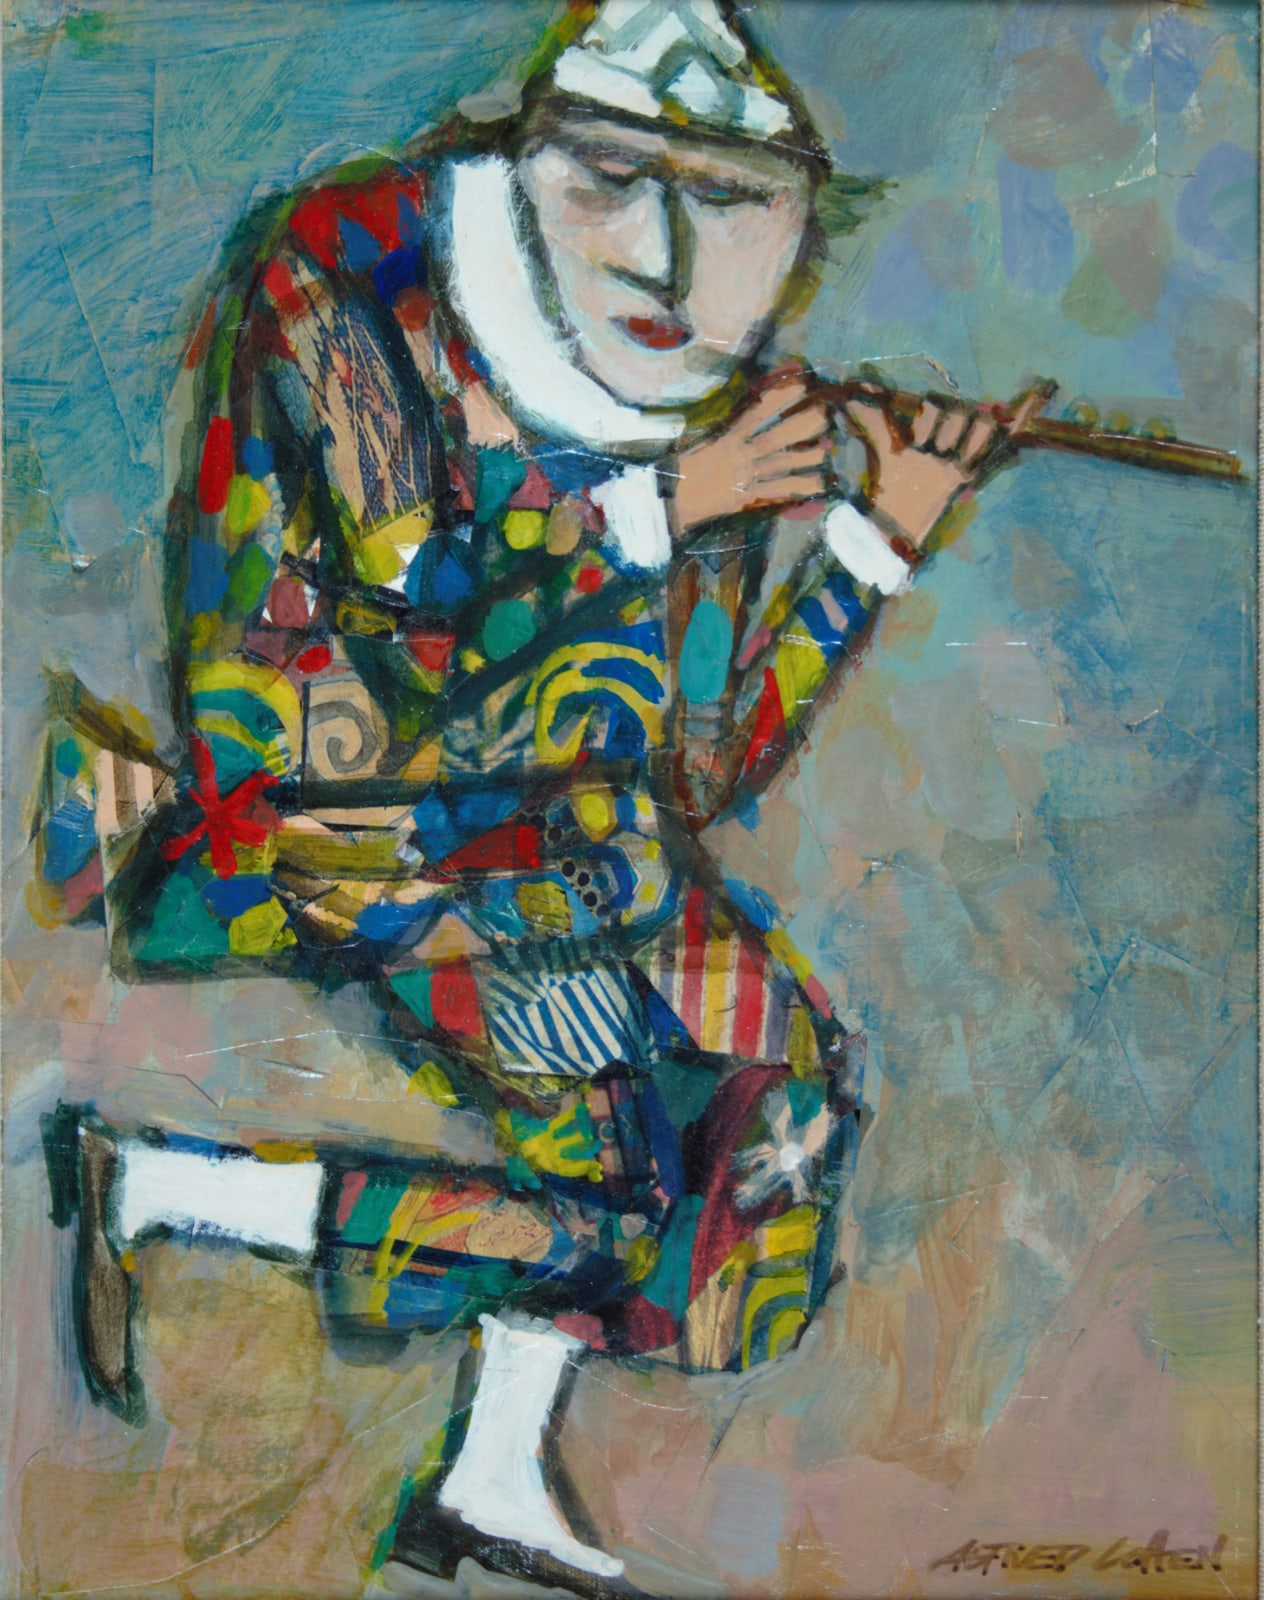 Alfred Cohen (1920-2001) Flautino: Figure from the Commedia dell'Arte 1985 Oil paint and collage 29.3 x 22.9 cm Collection: Max Saunders © Estate of Alfred Cohen 2020